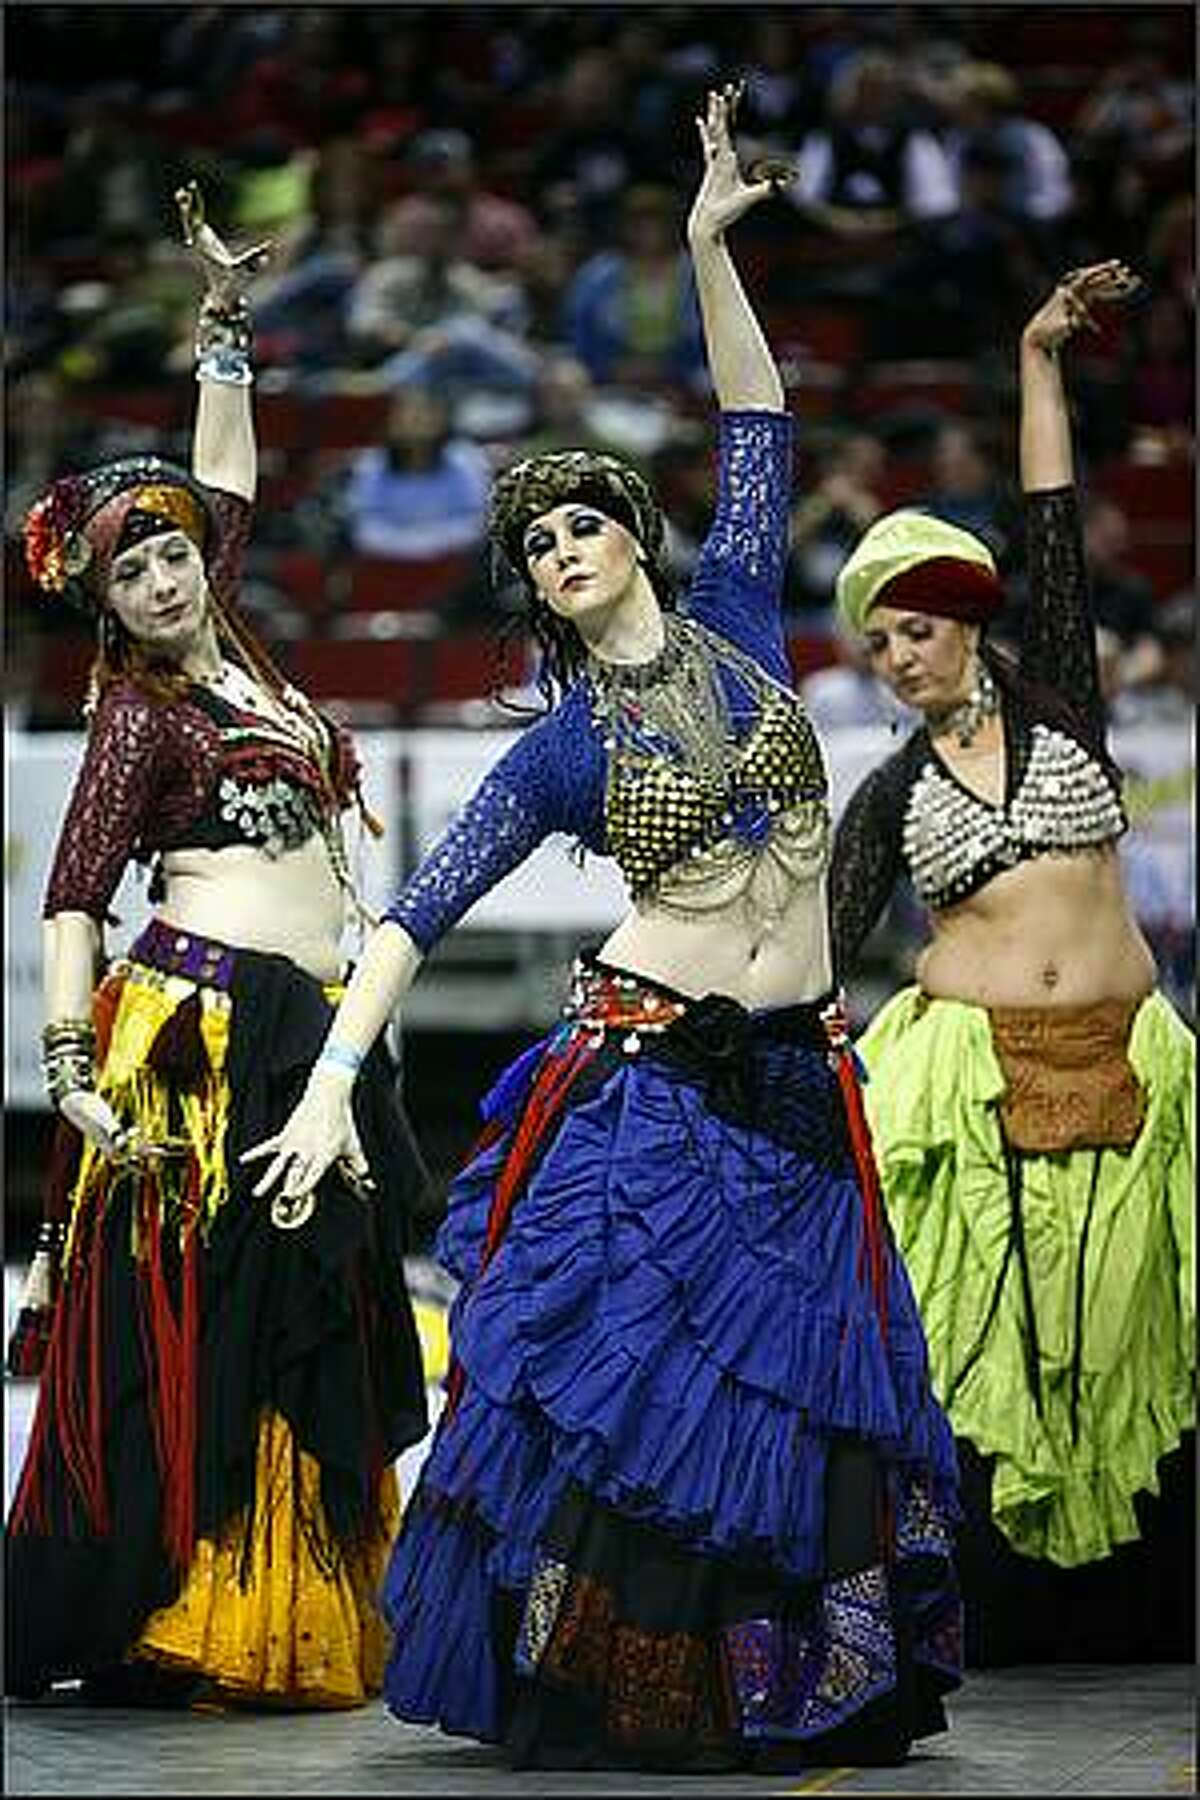 Susie Roman, a member of Skin Deep belly dancing troop, center, performs with other dancers during the Rat City Rollergirls season opening bout at Key Arena.